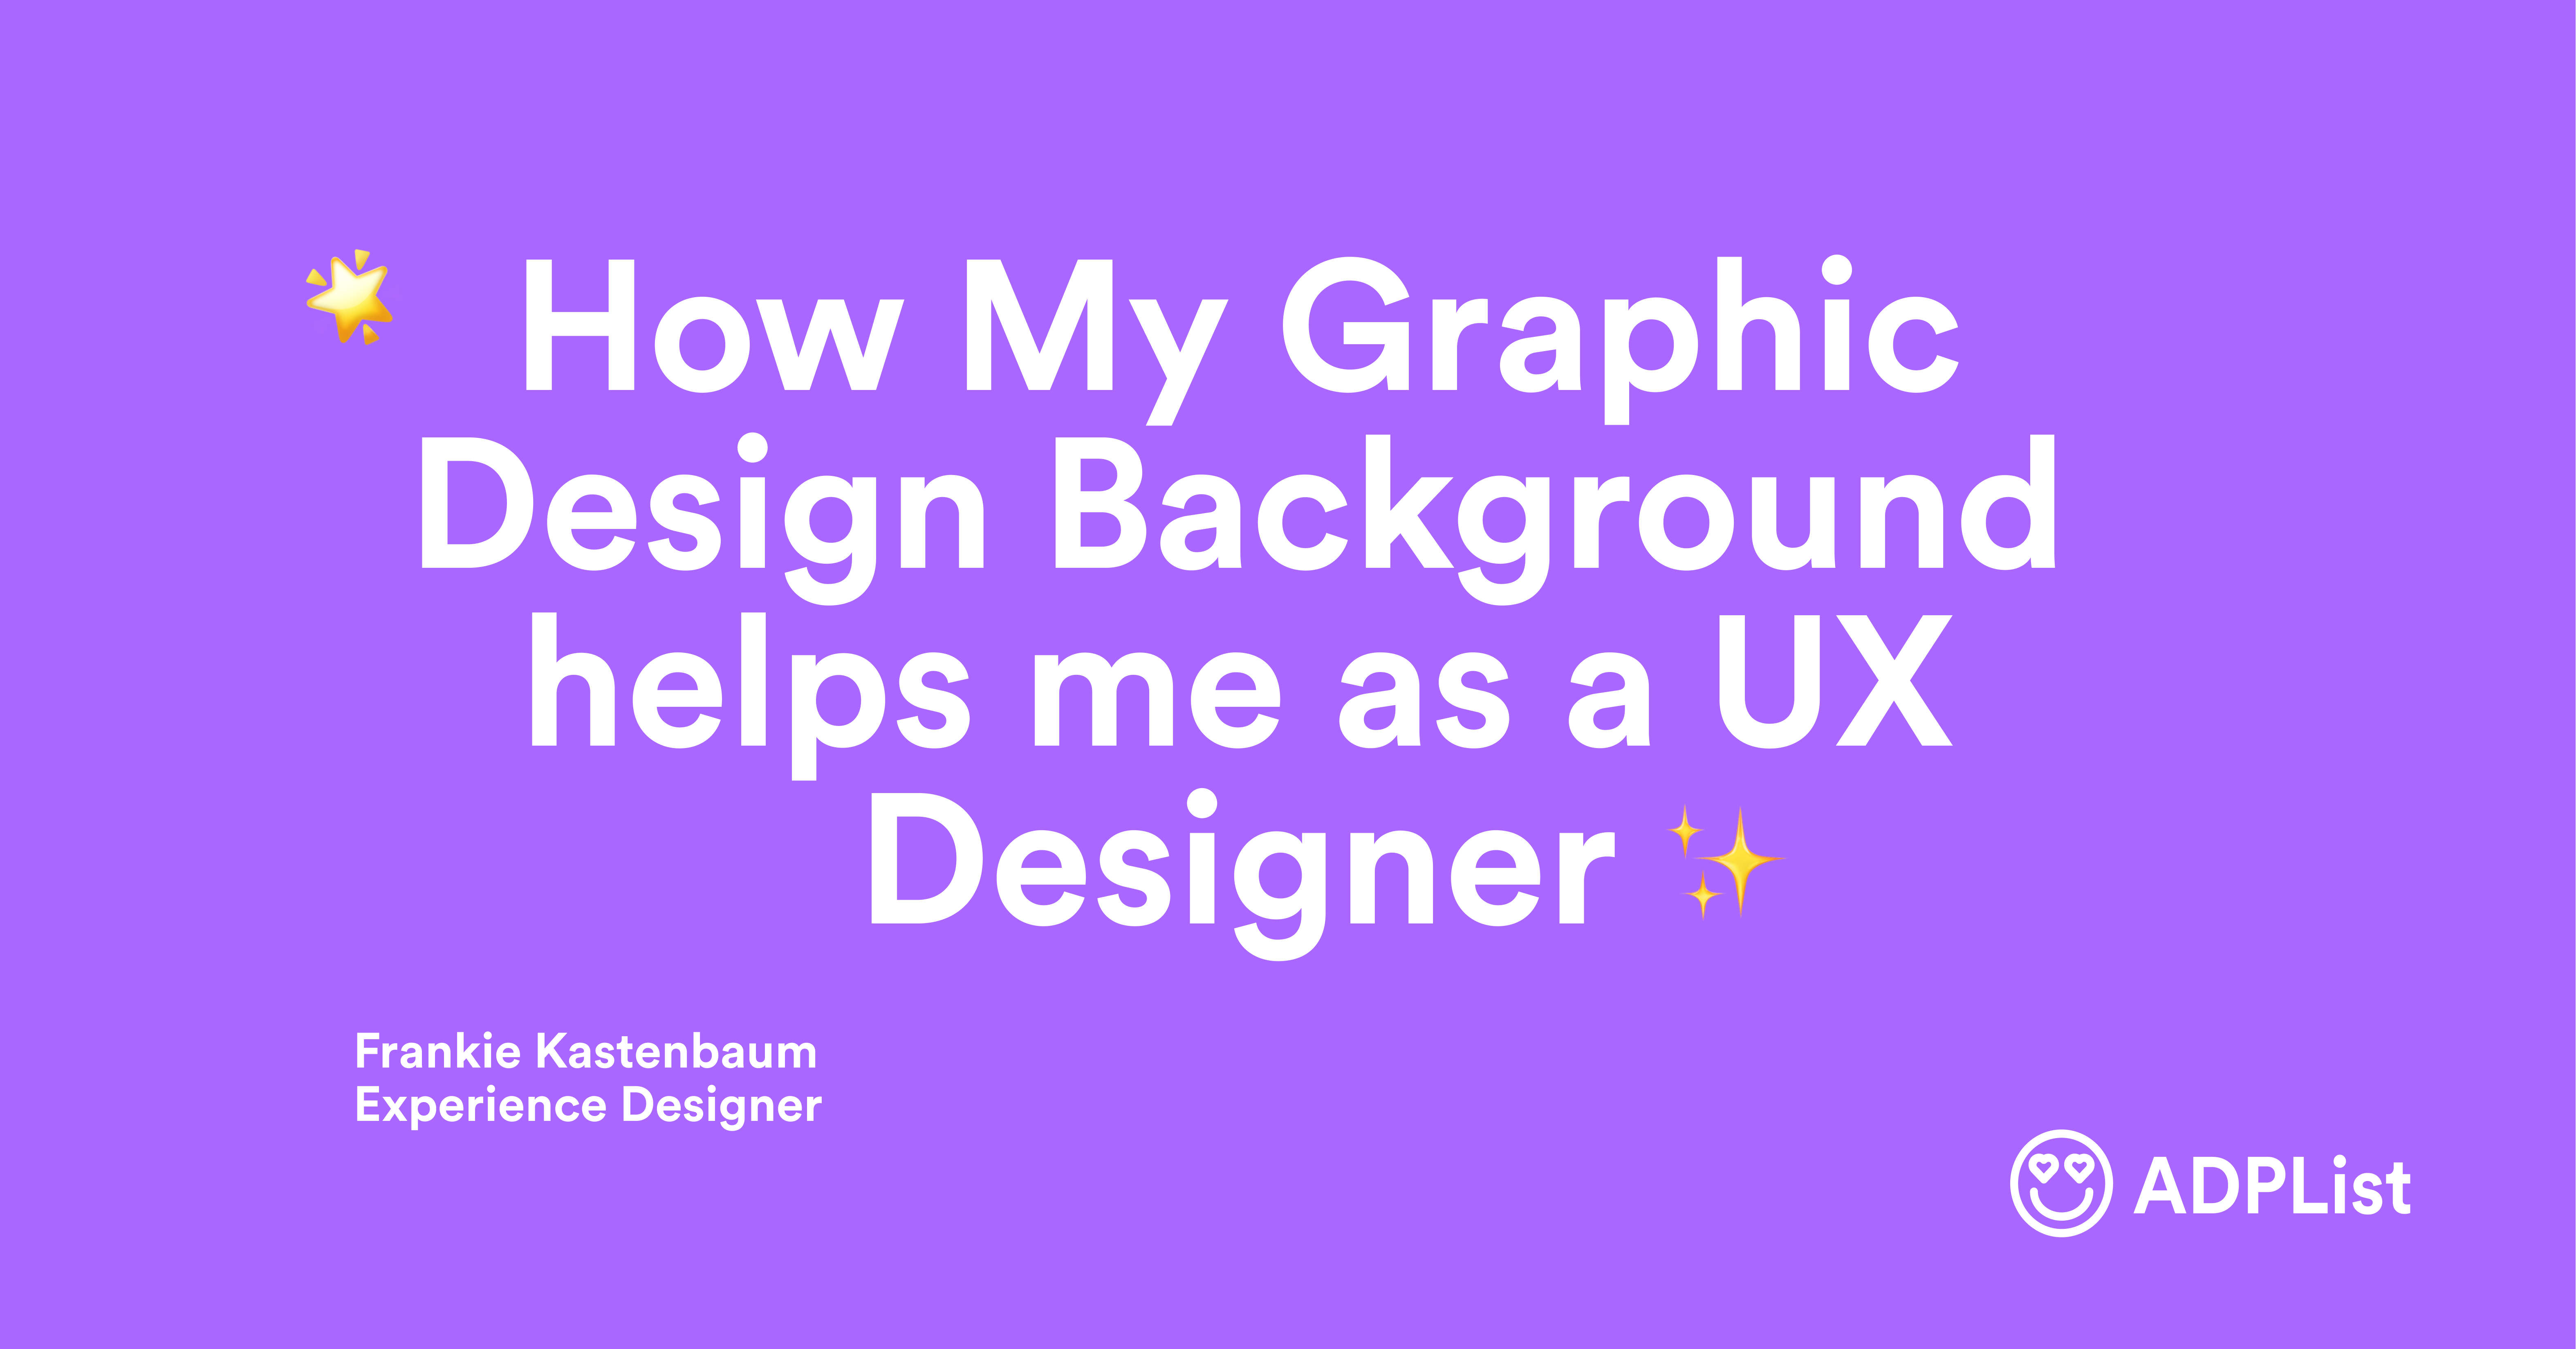 How my graphic design background helps me as a UX Designer